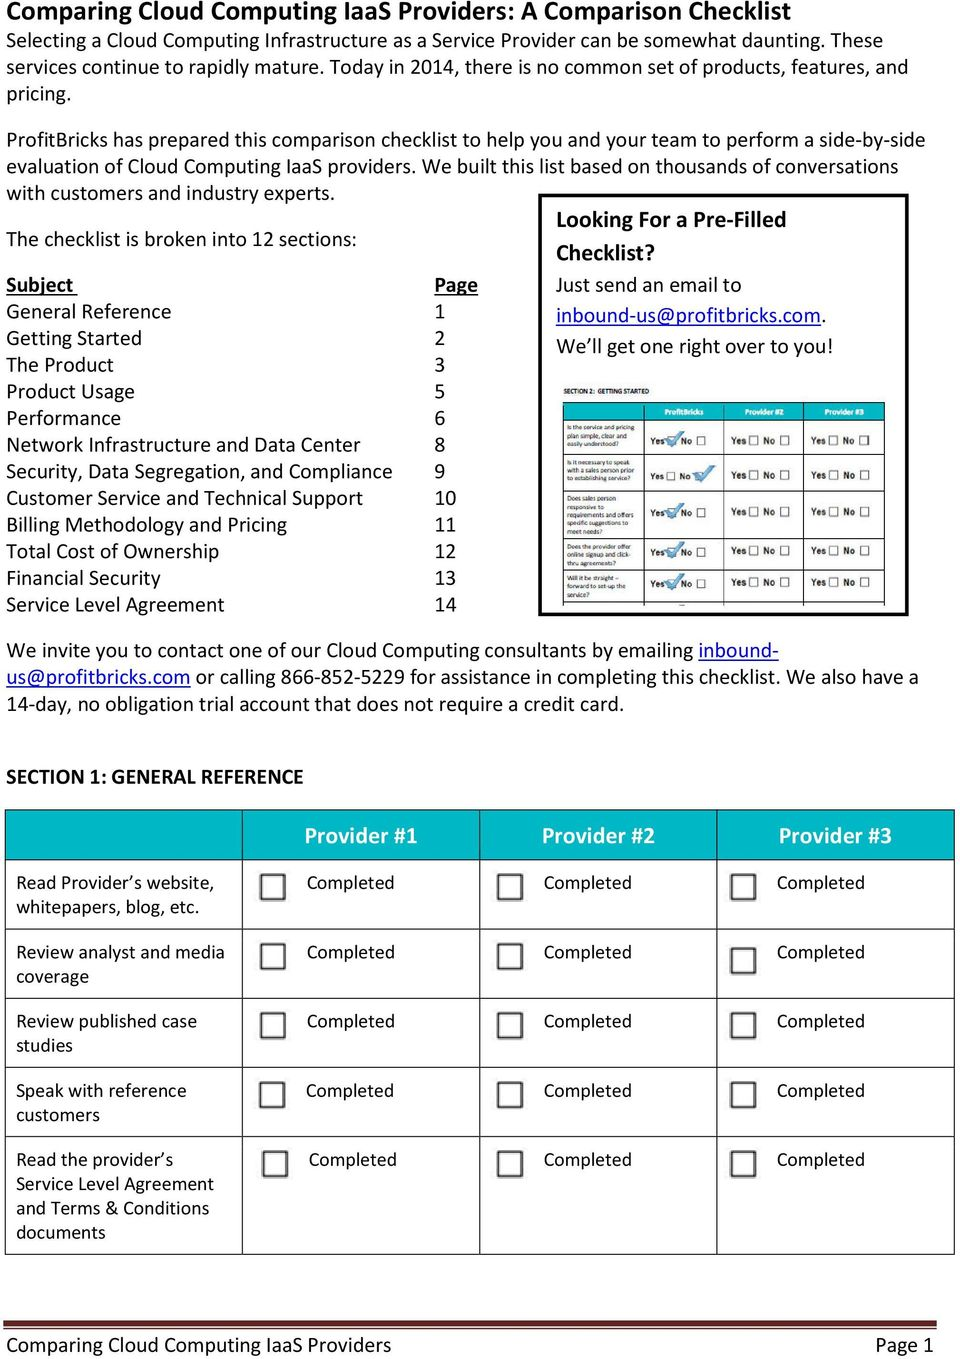 ProfitBricks has prepared this comparison checklist to help you and your team to perform a side-by-side evaluation of Cloud Computing IaaS providers.